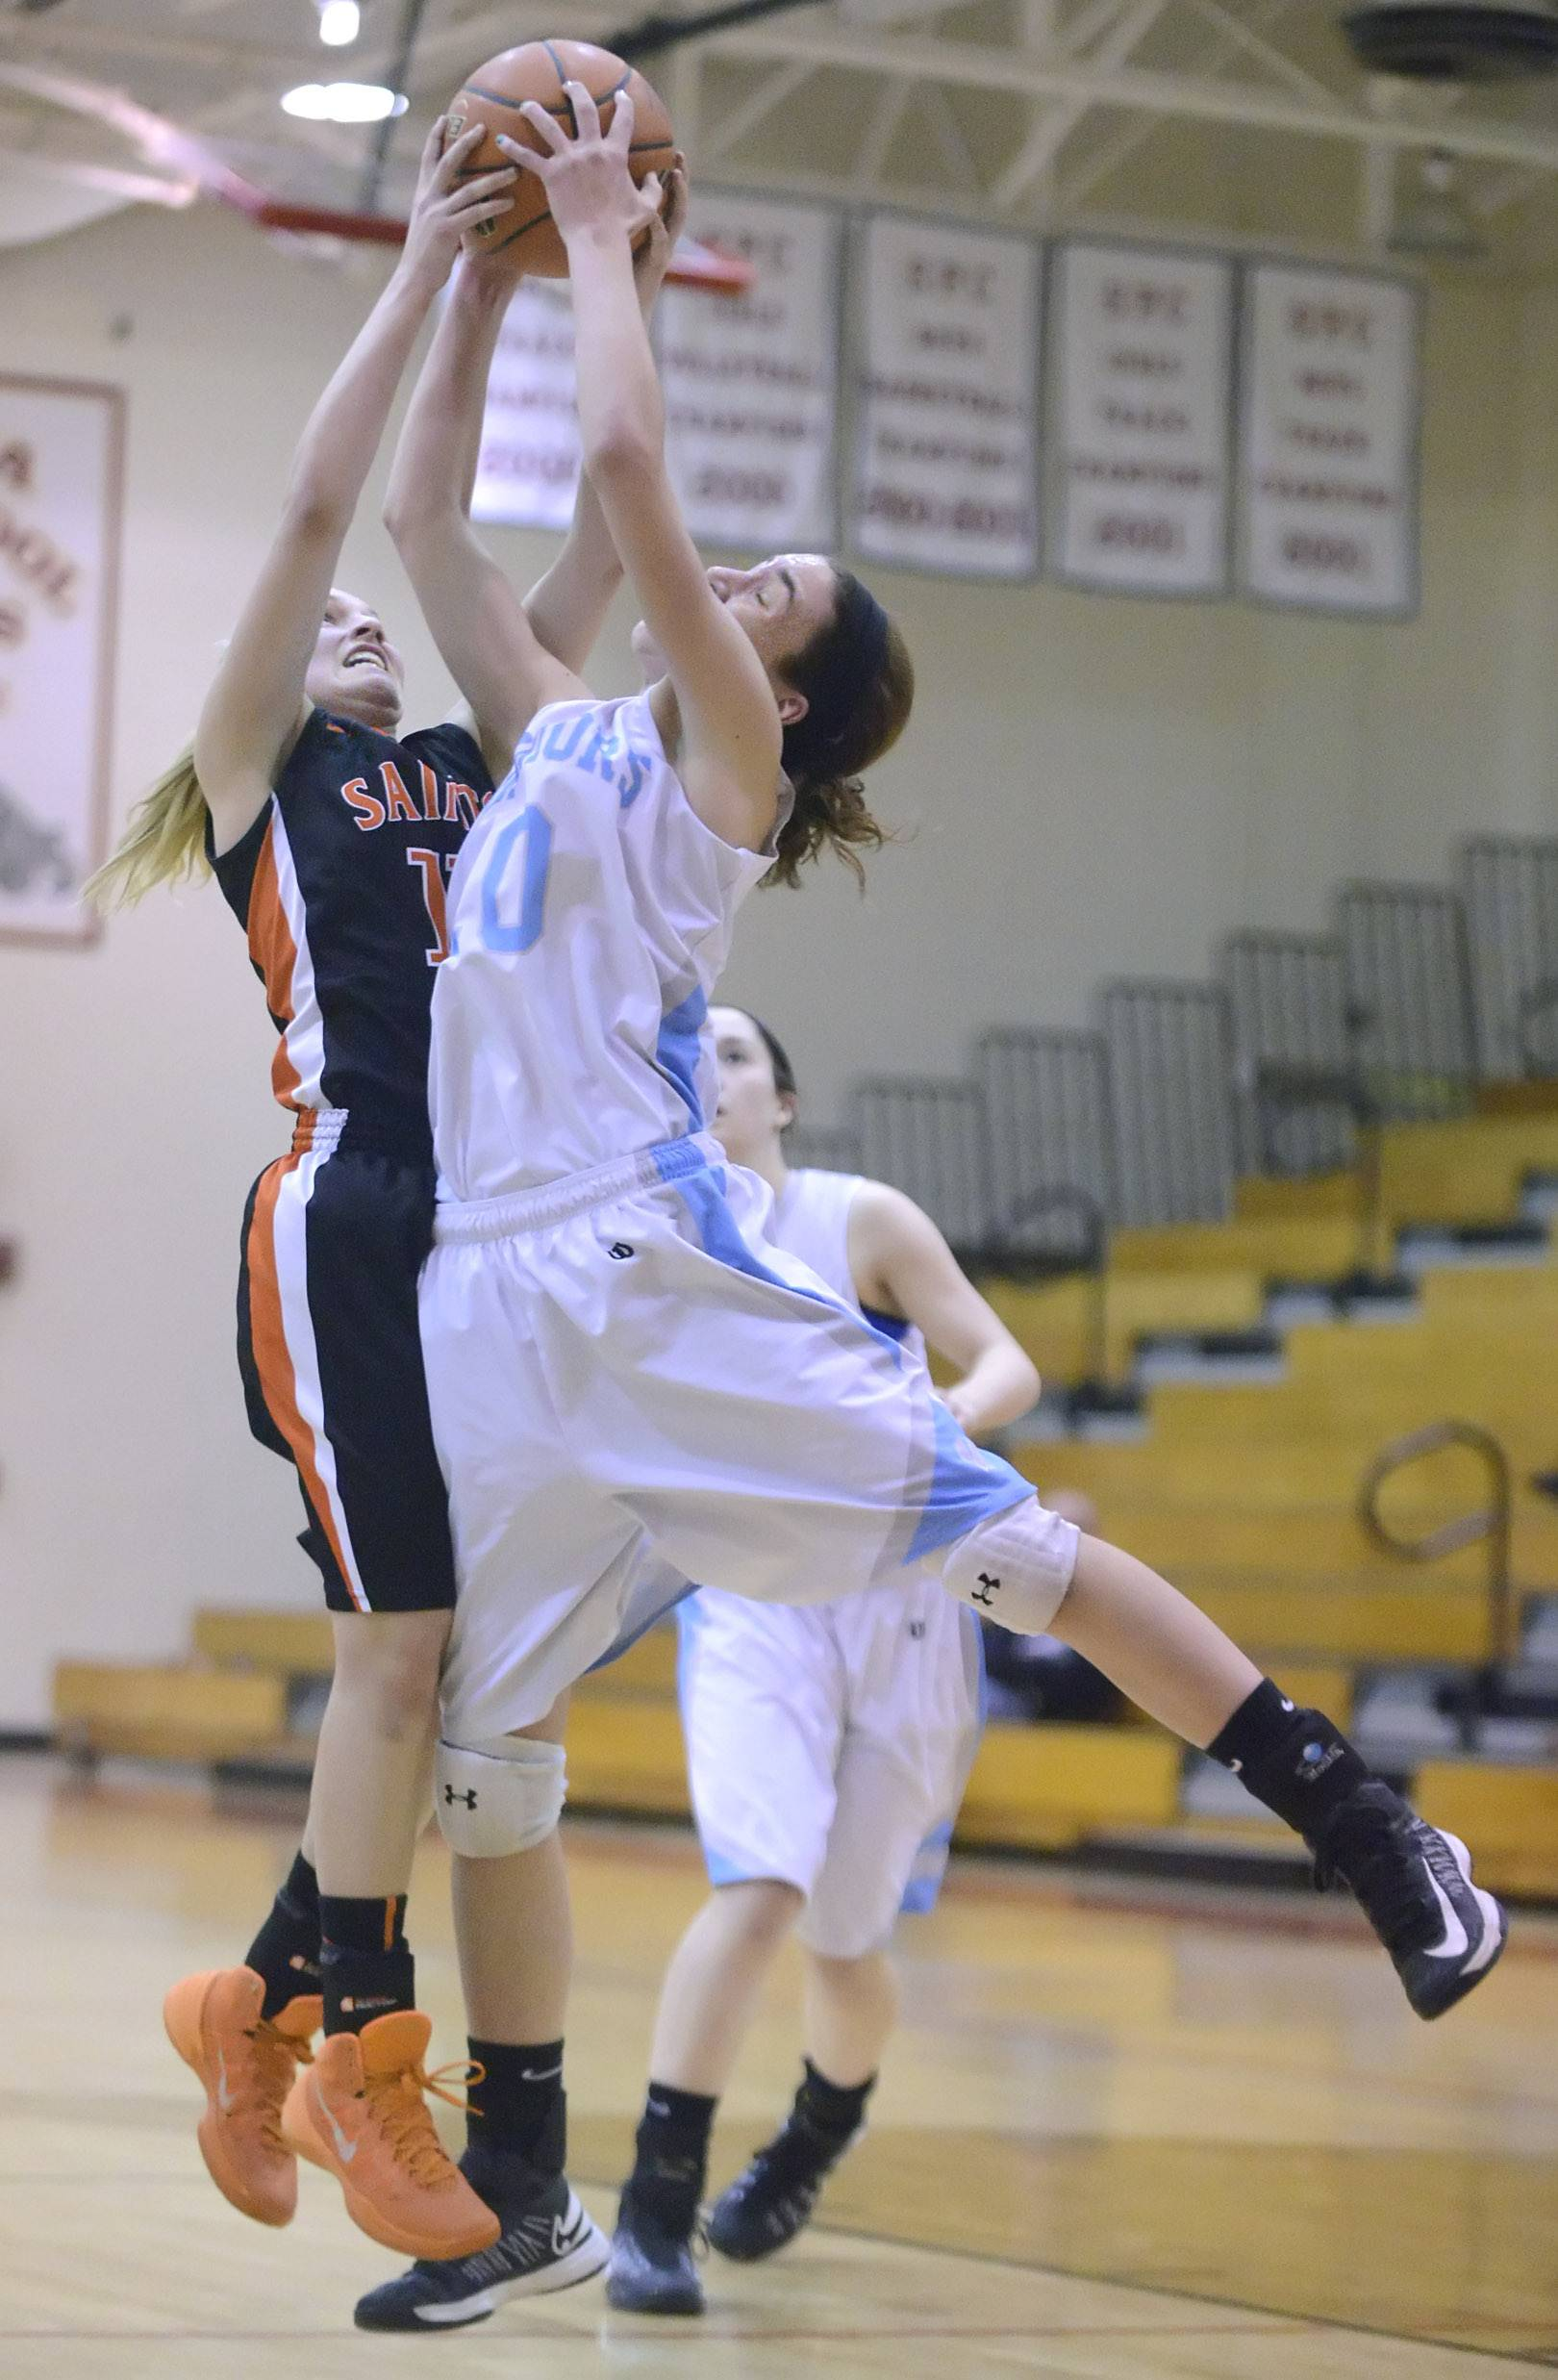 St. Charles East's Katelyn Claussner and Willowbrook's Molly Krawczykowski leap for a rebound in the second quarter.